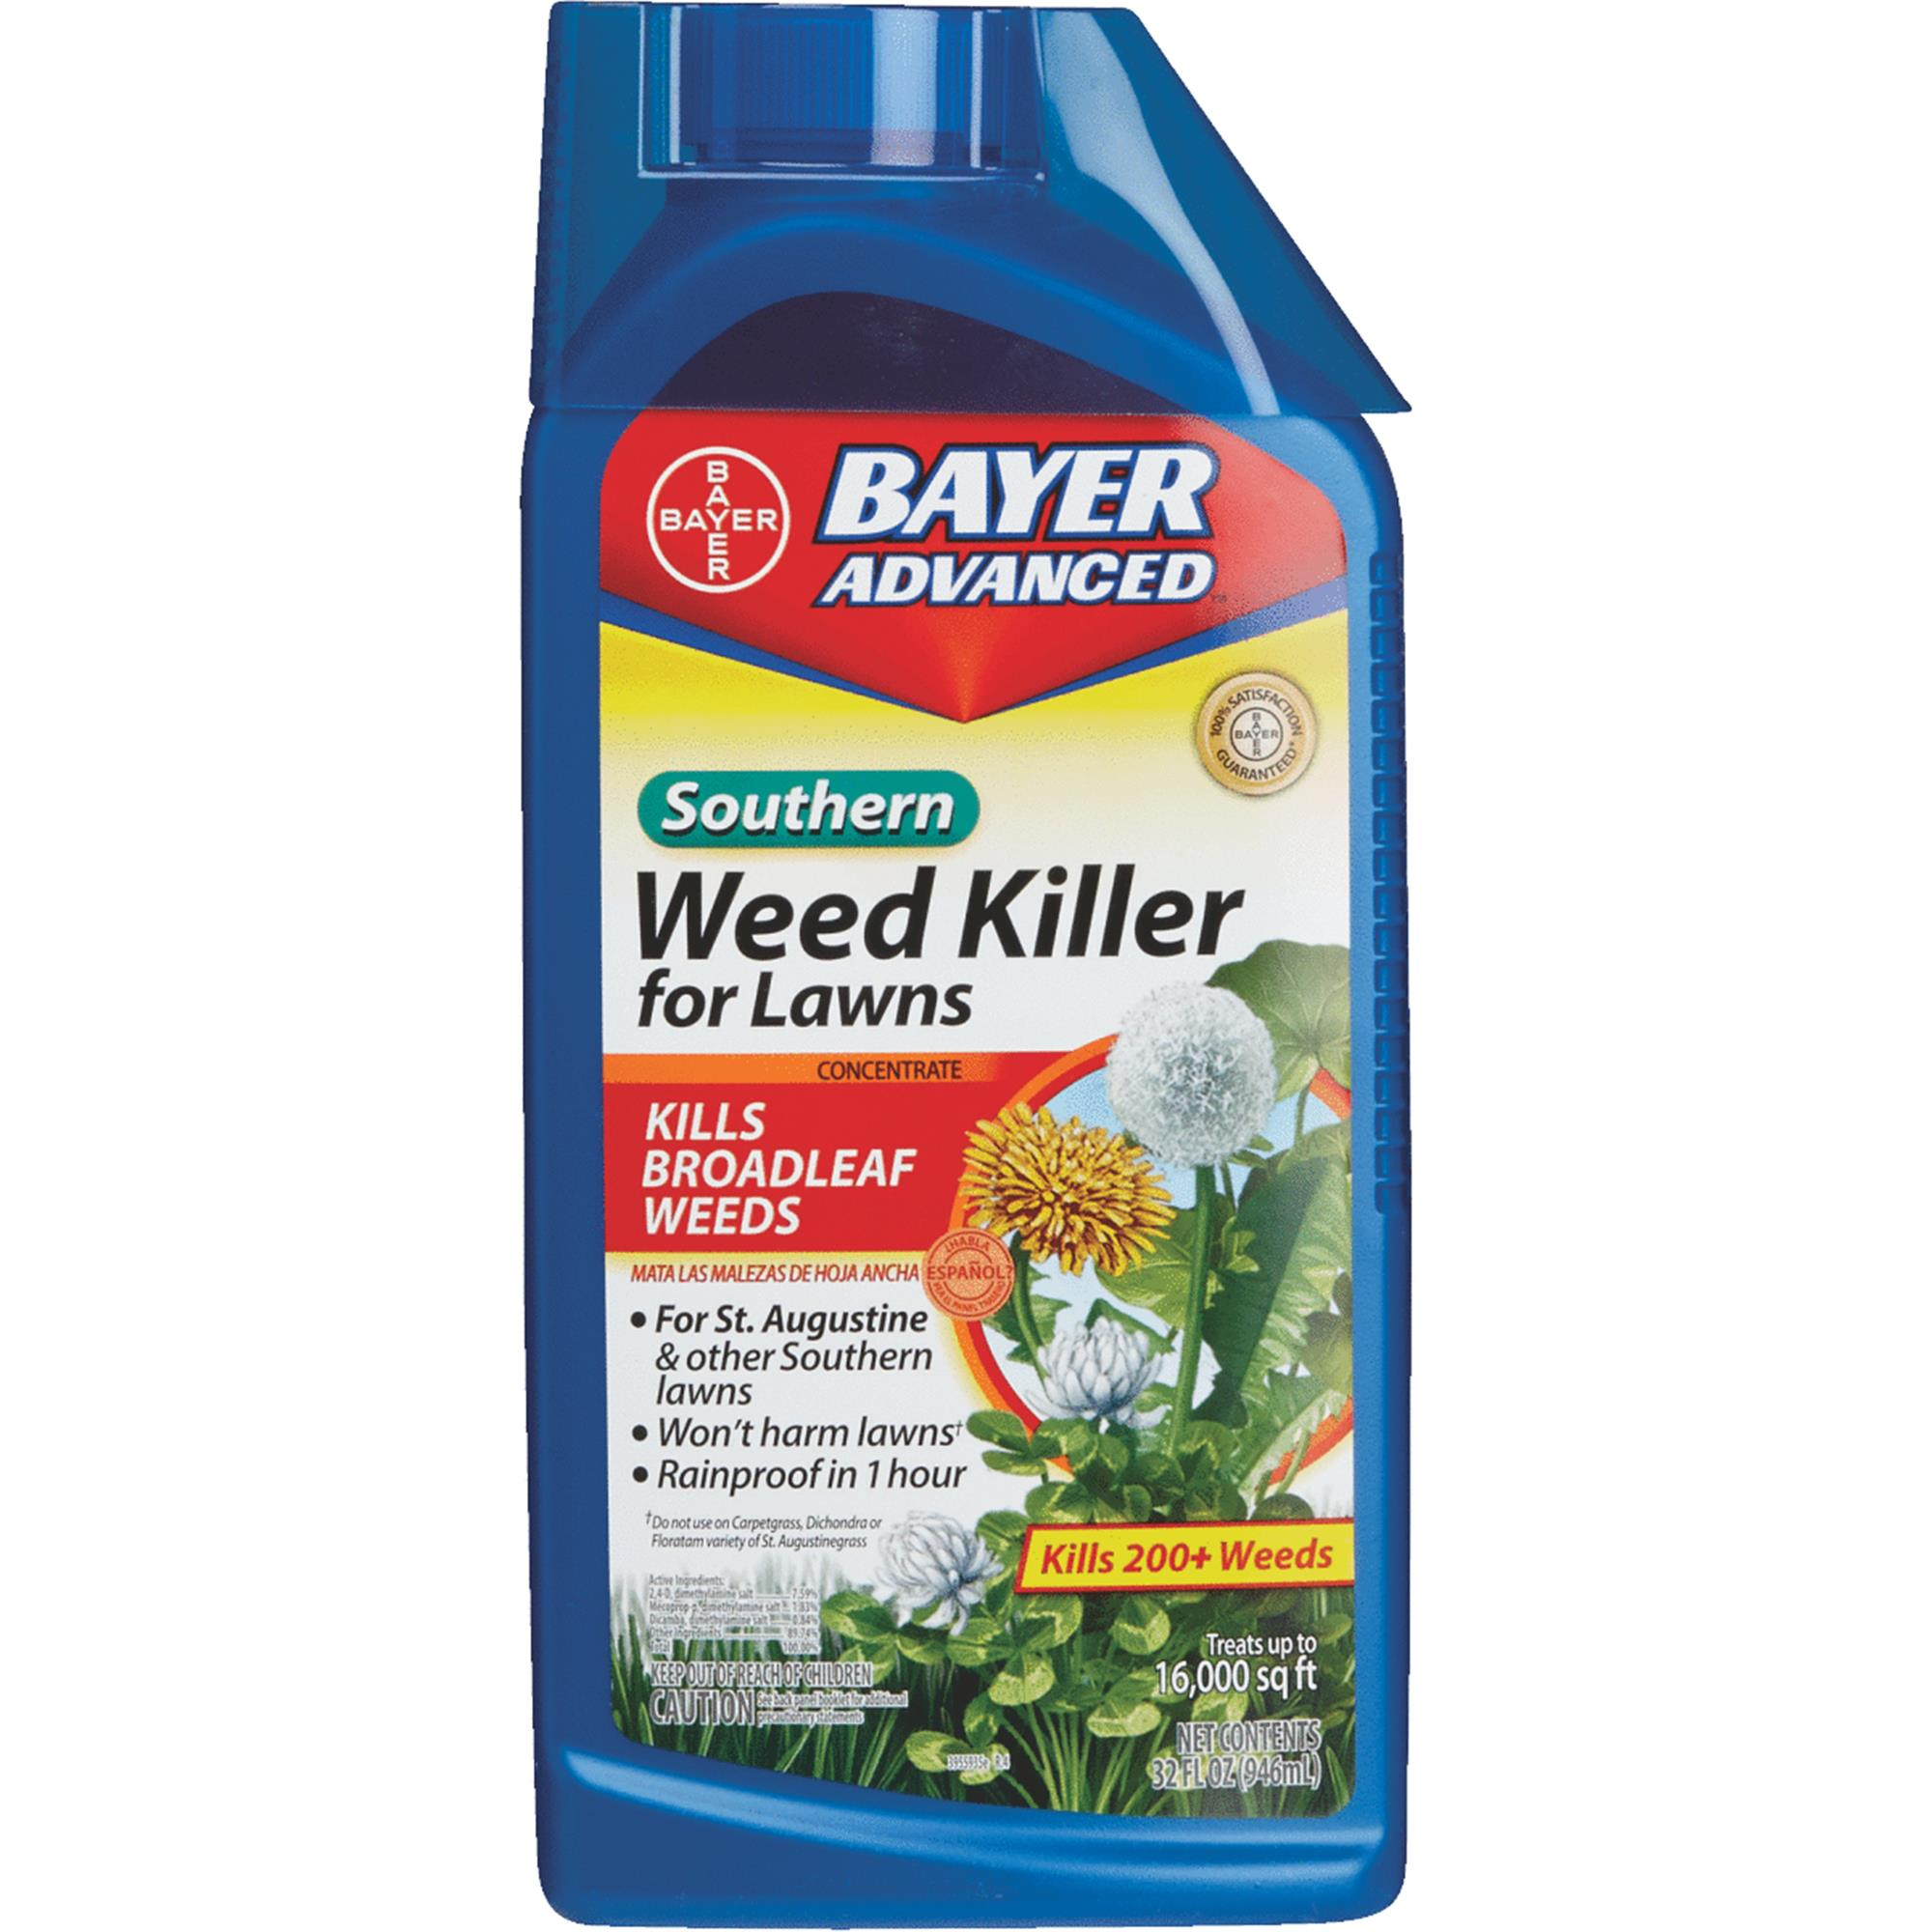 Bayer Advanced Southern Weed Killer For Lawns